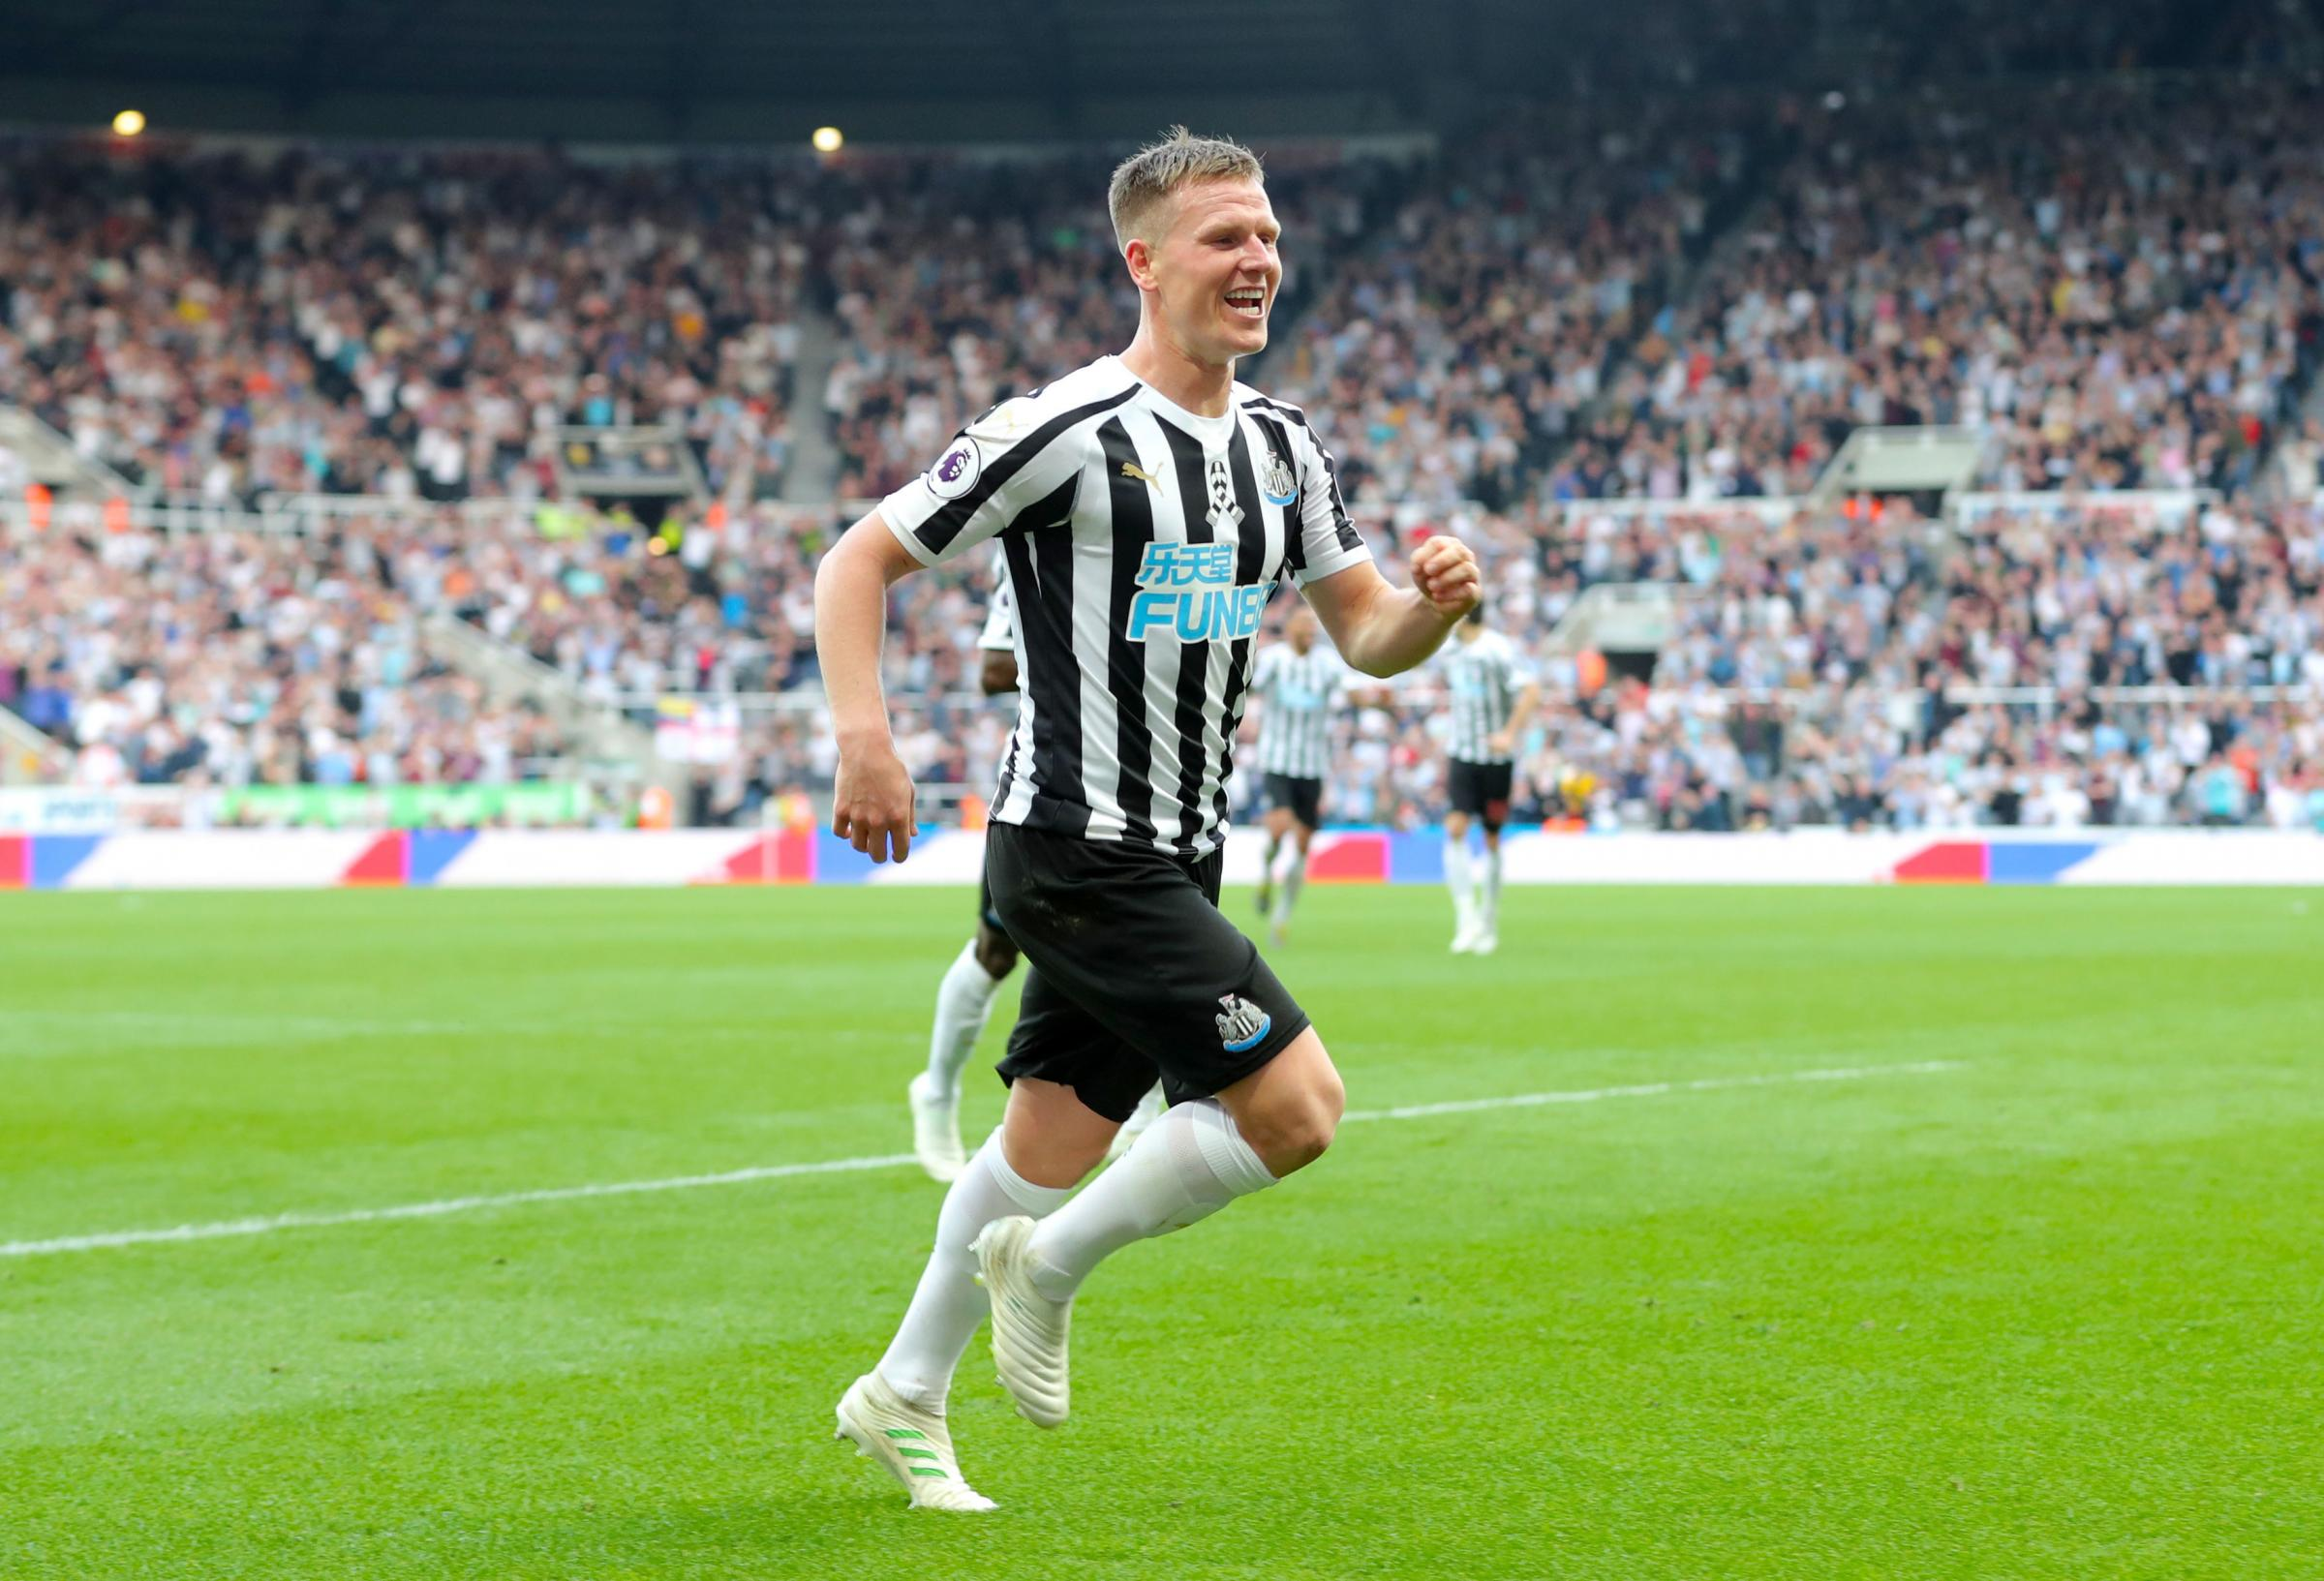 Newcastle United's Matt Ritchie during the Premier League match at St James' Park, Newcastle. PRESS ASSOCIATION Photo. Picture date: Saturday April 20, 2019. See PA story SOCCER Newcastle. Photo credit should read: Richard Sellers/PA Wire. RESTRIC